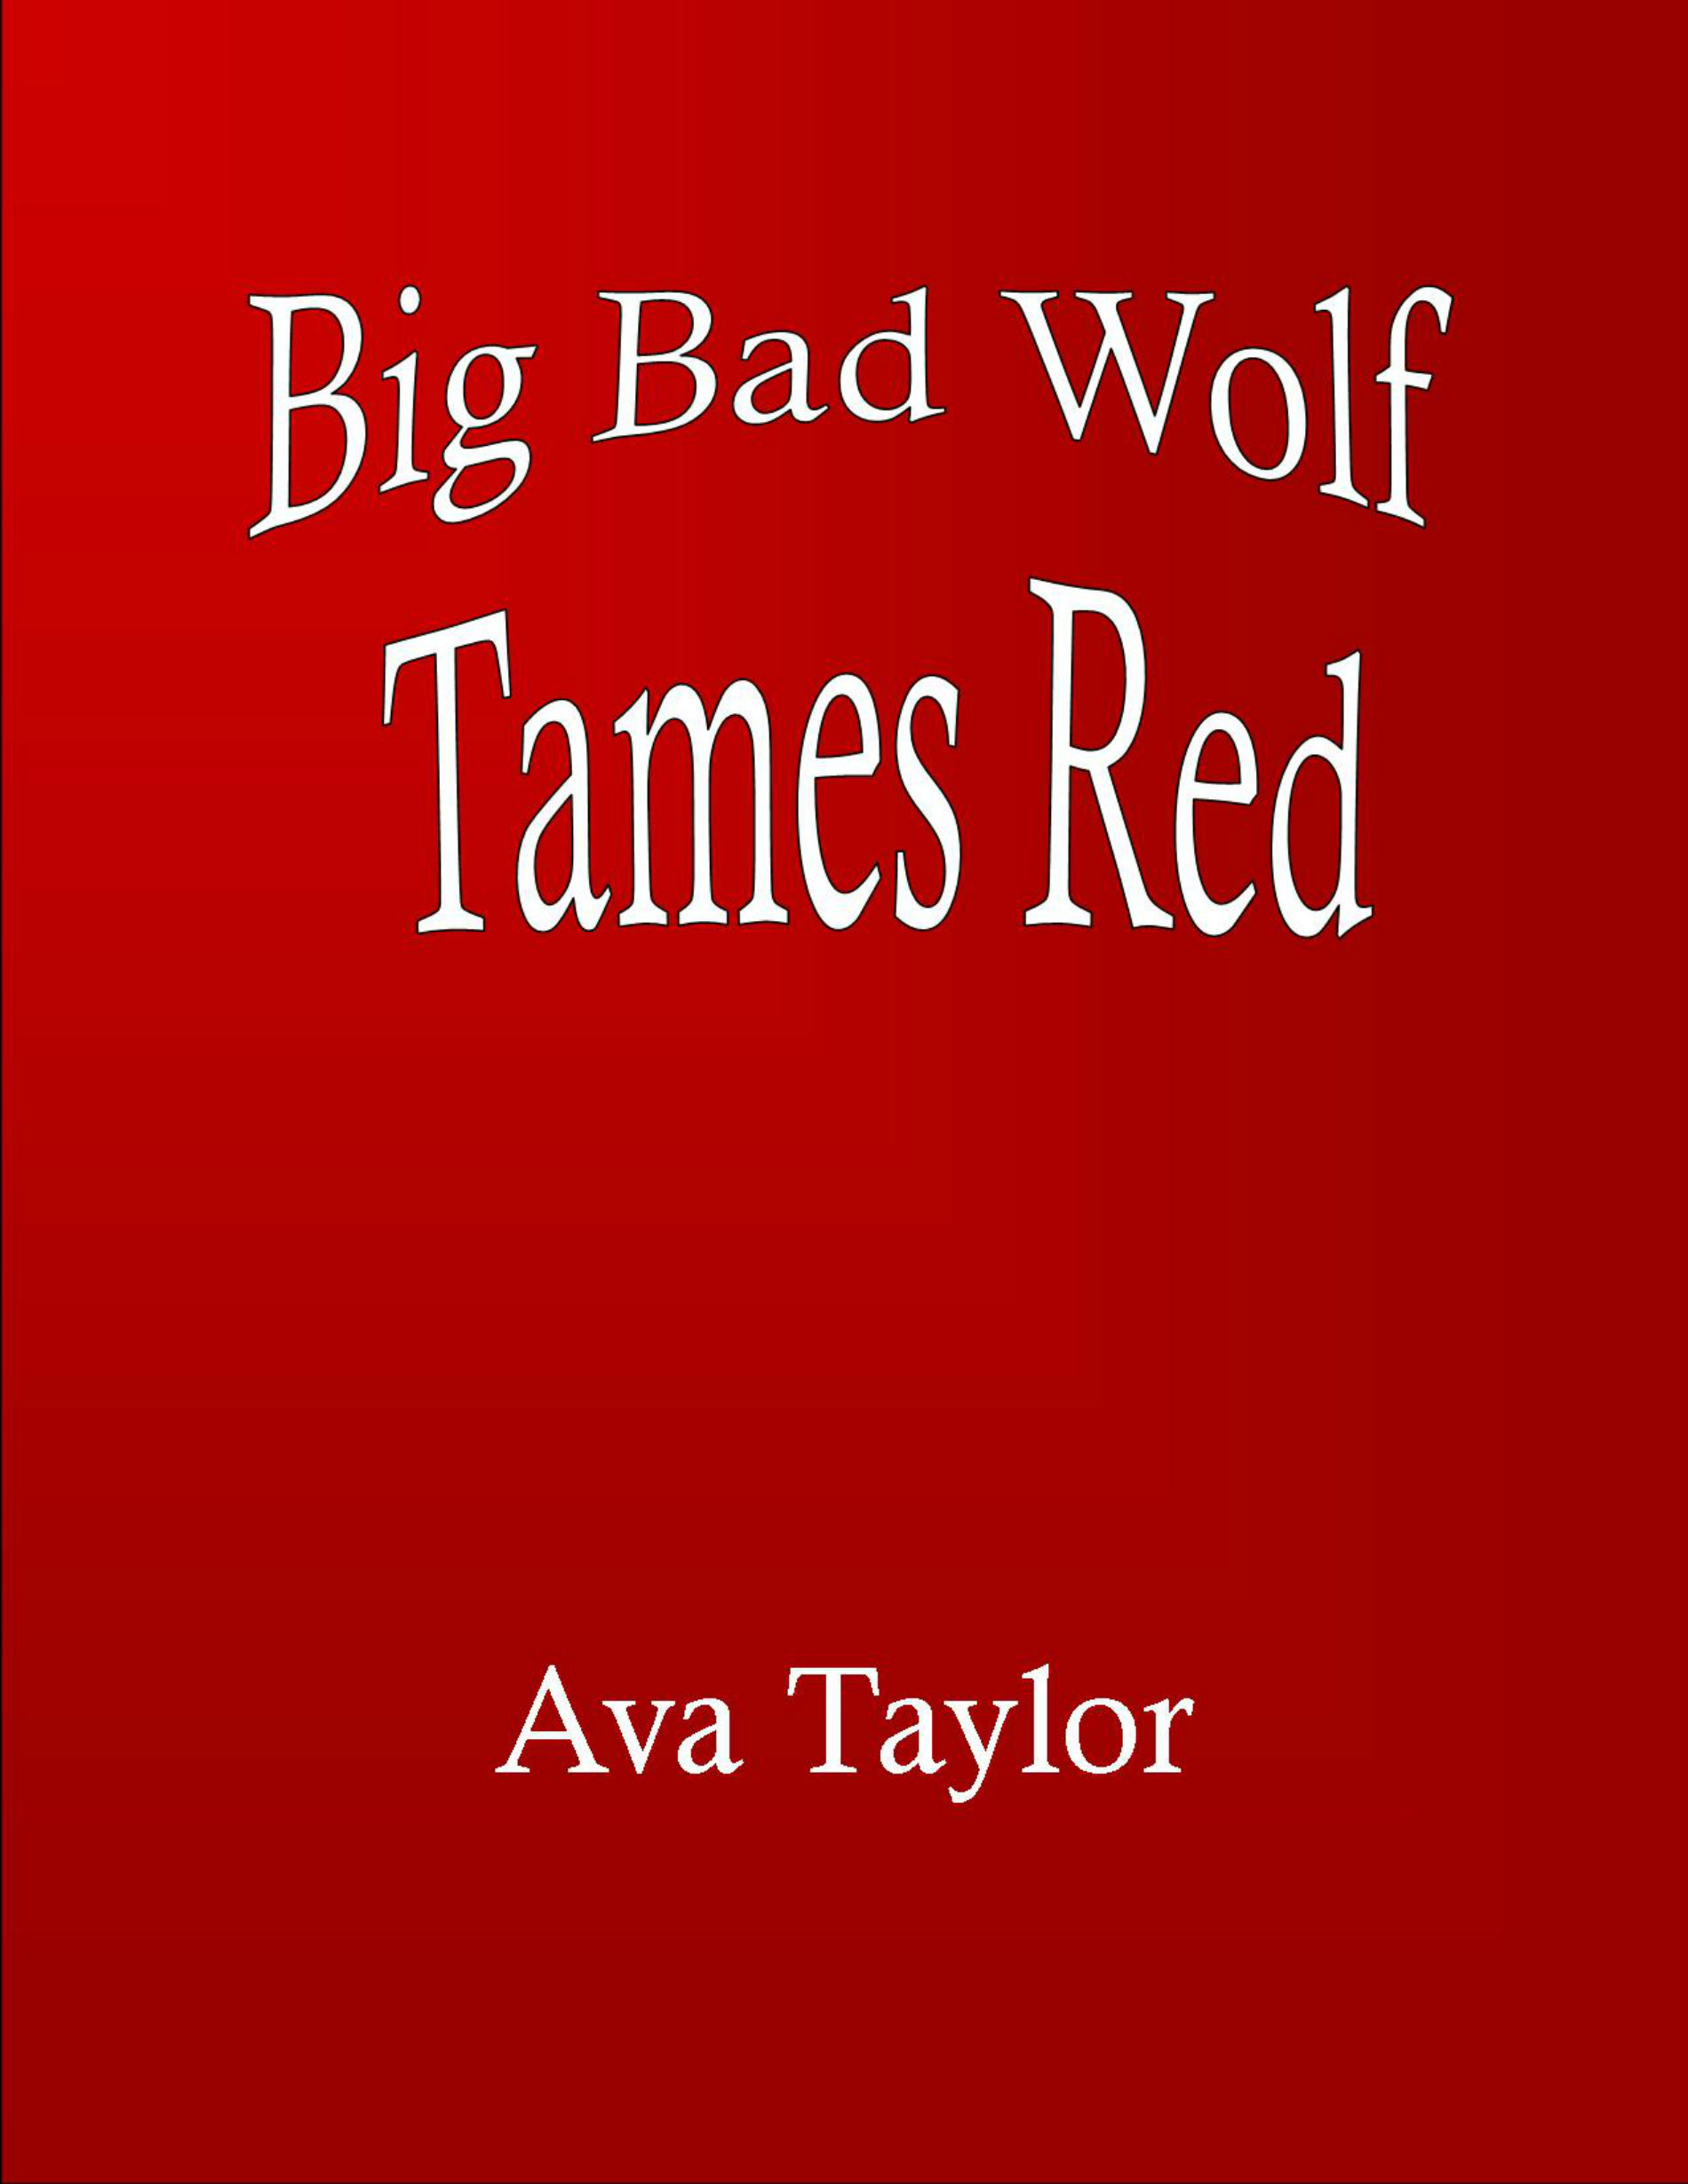 The Big Bad Wolf Tames Red Ava Taylor